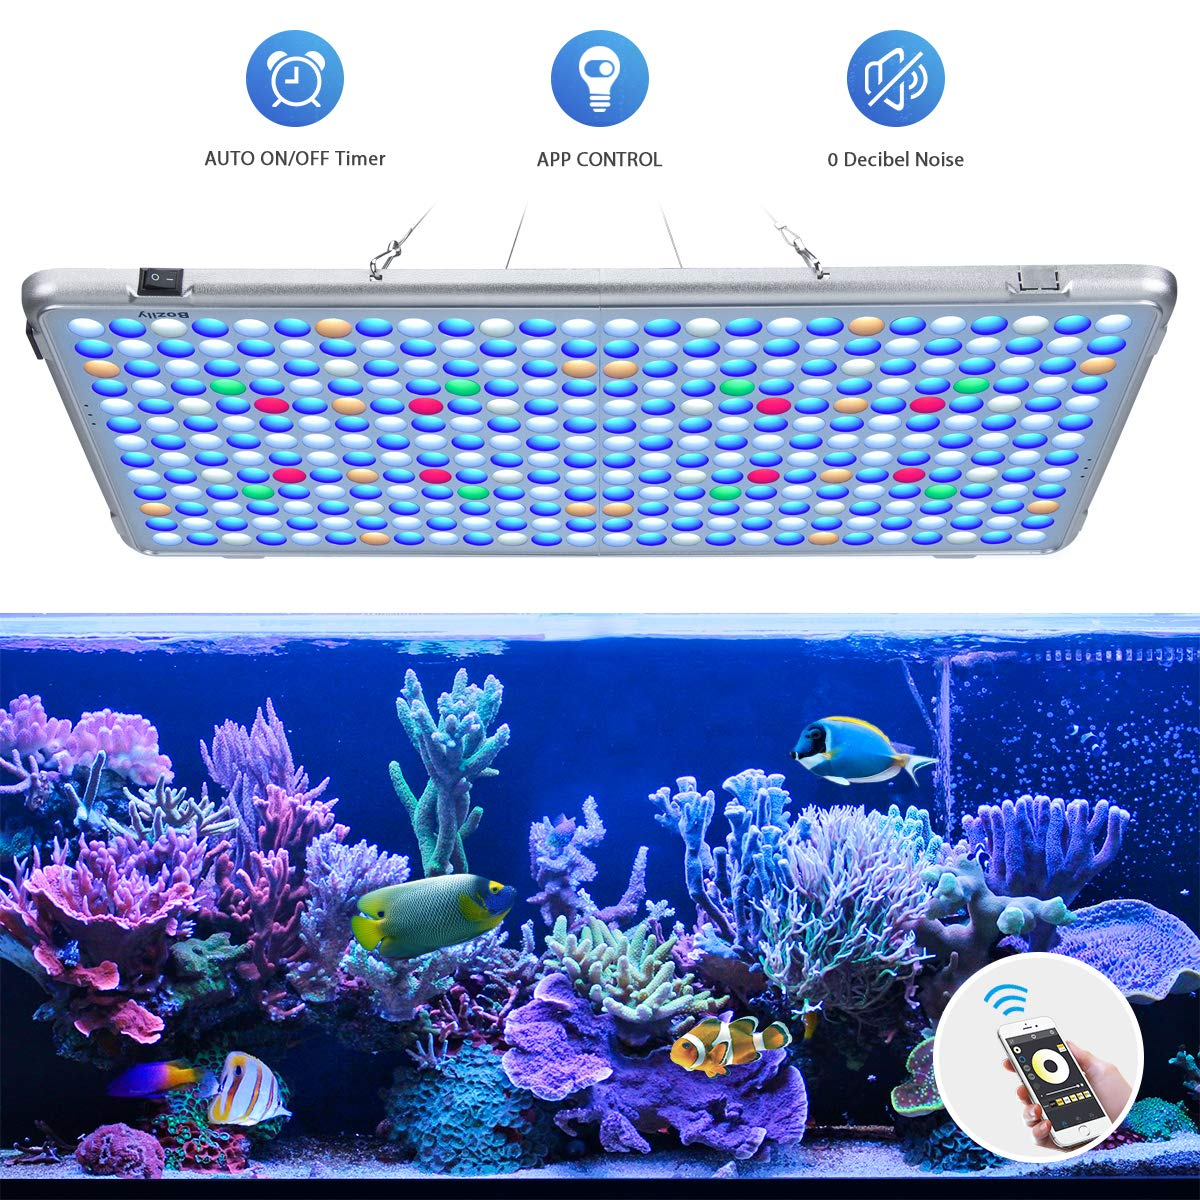 Bozily Aquarium Lights LED 300W, Full Spectrum Coral Reef Light for Aquarium Tanks Lighting APP Control with Auto On/Off Dimming & Timer for Saltwater Freshwater Fish Grow Marine Tank by Bozily